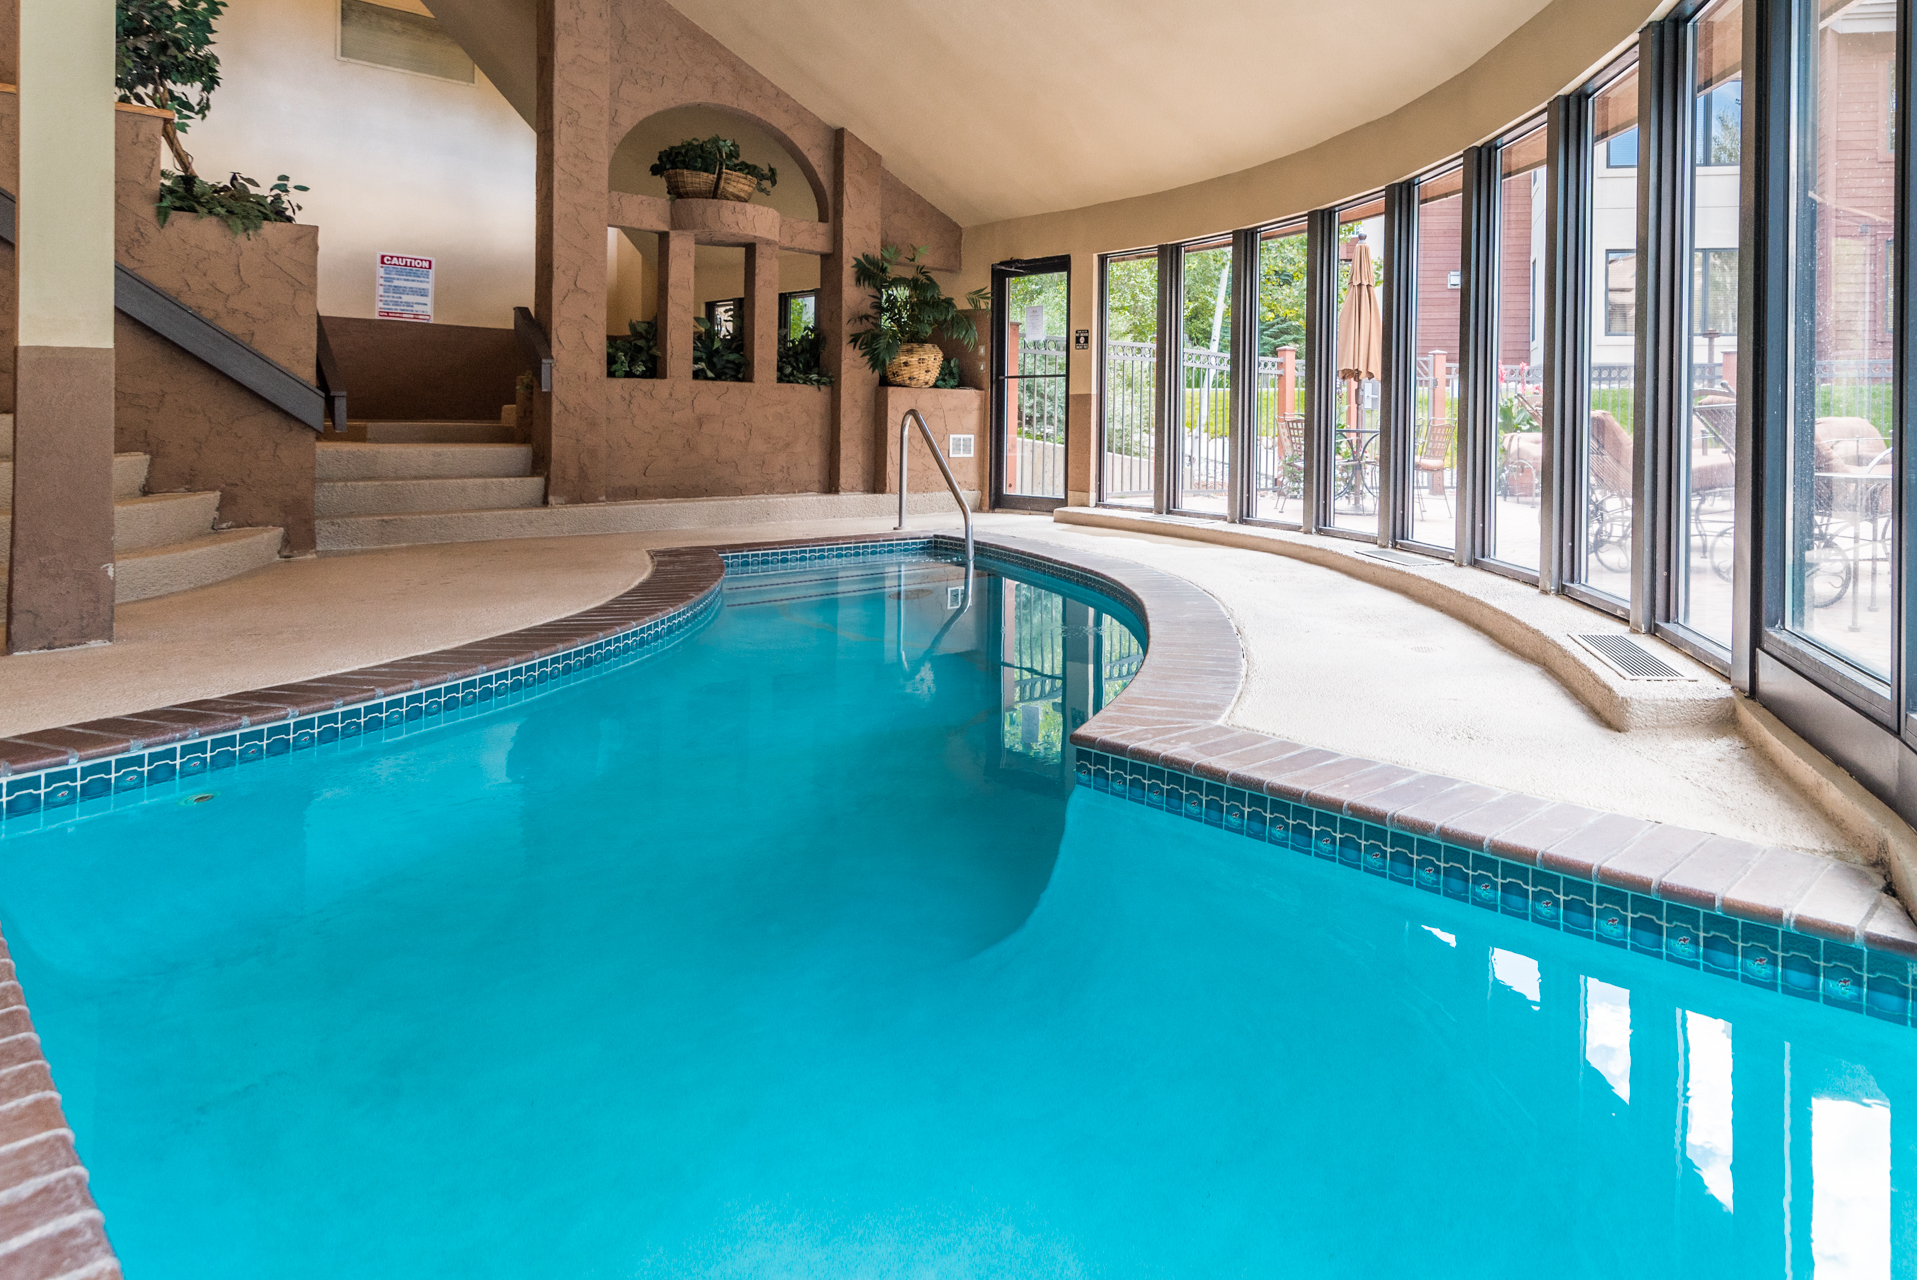 Trappeur S Crossing Resort Pool What To Do In Steamboat